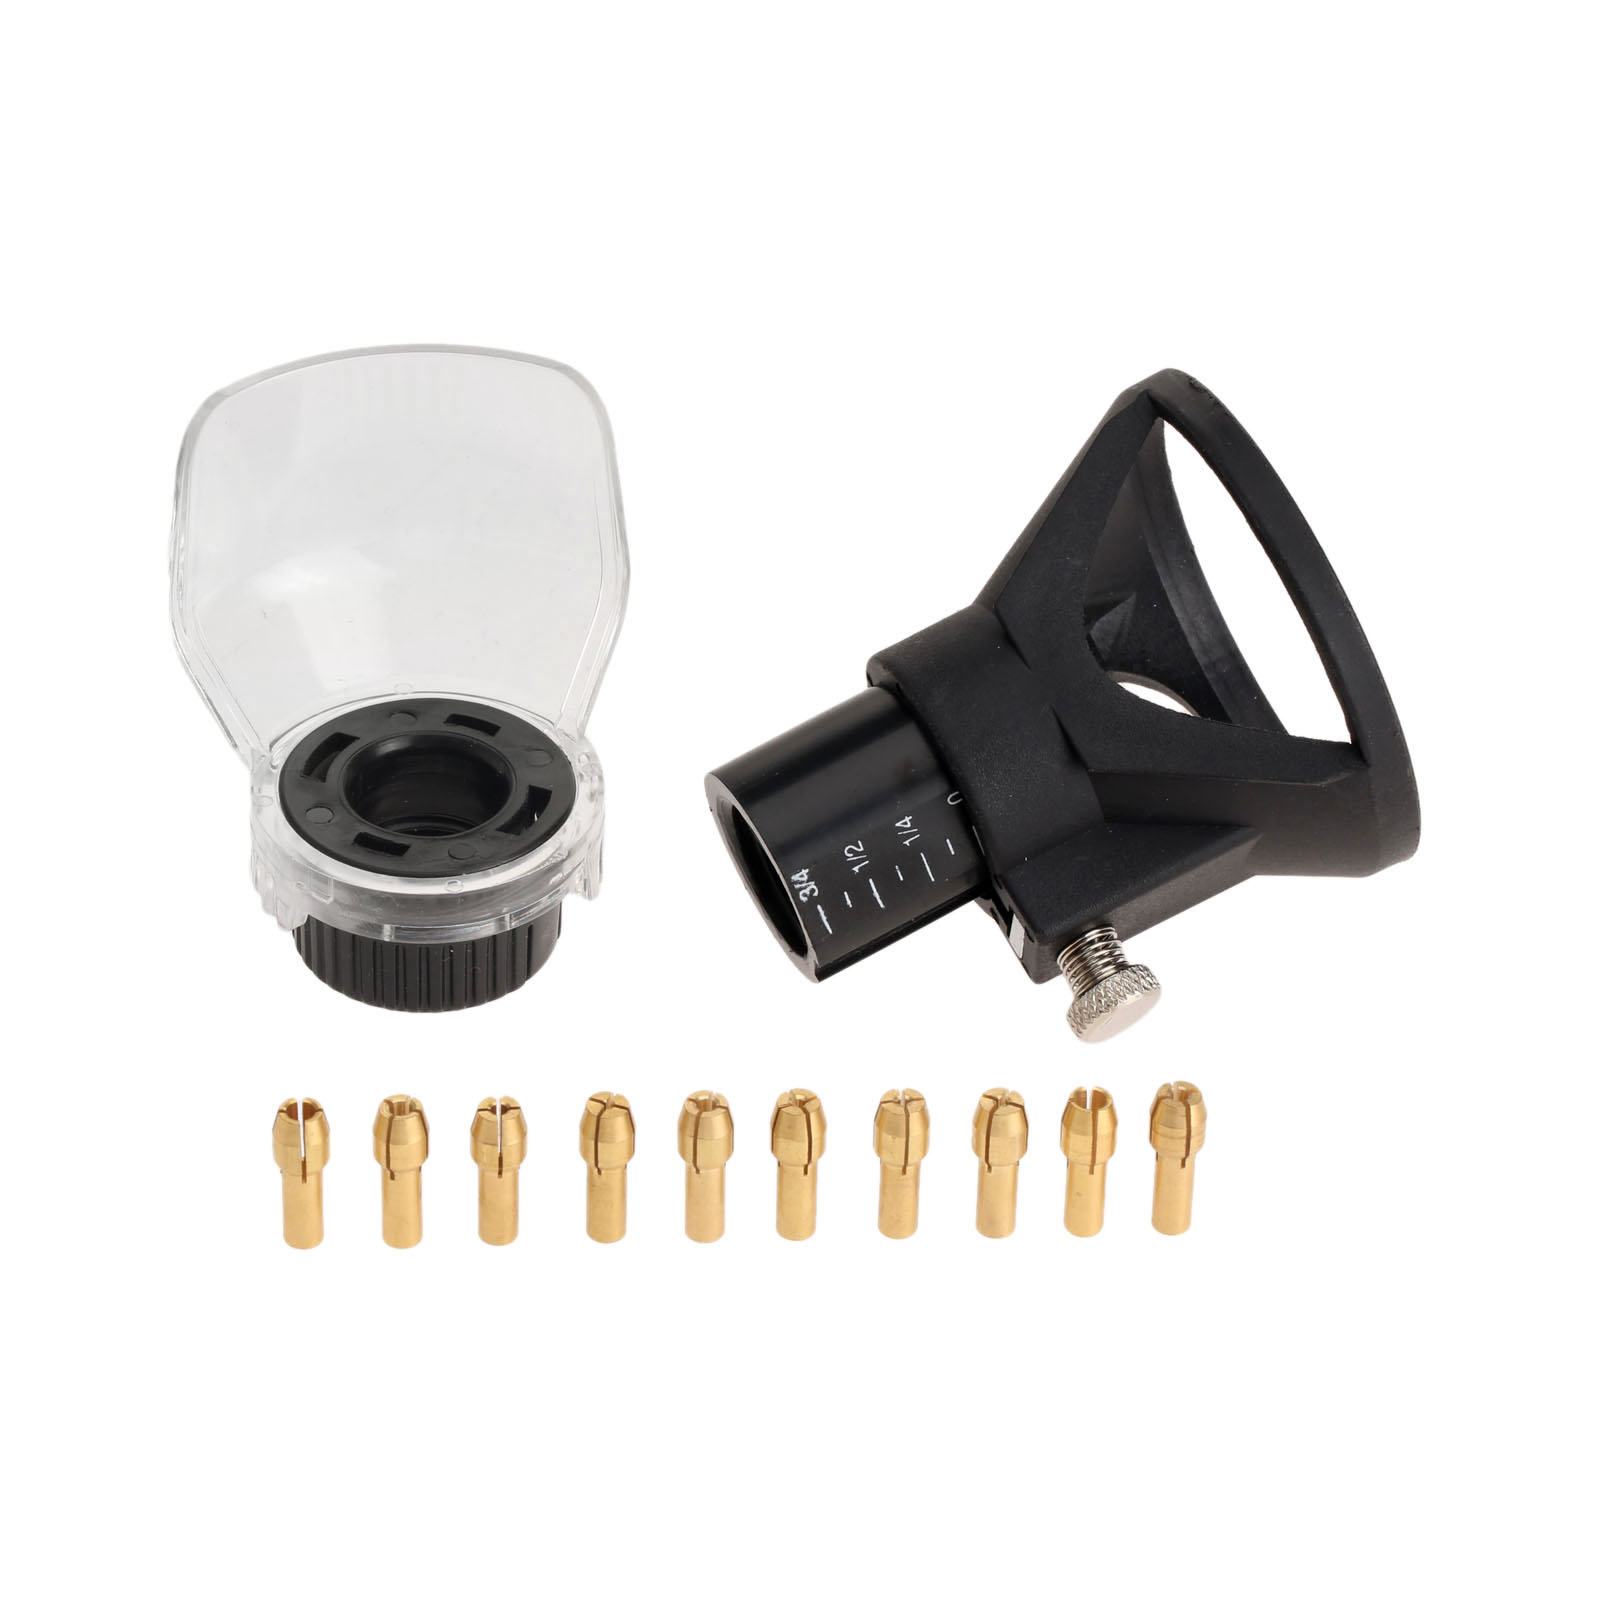 Dophee 12Pcs Dremel Accessories Rotary Tool Drill Dedicated Locator Horn +0.5-3.2MM Brass Collets Drill Chuck 4.3MM Shank +Cover